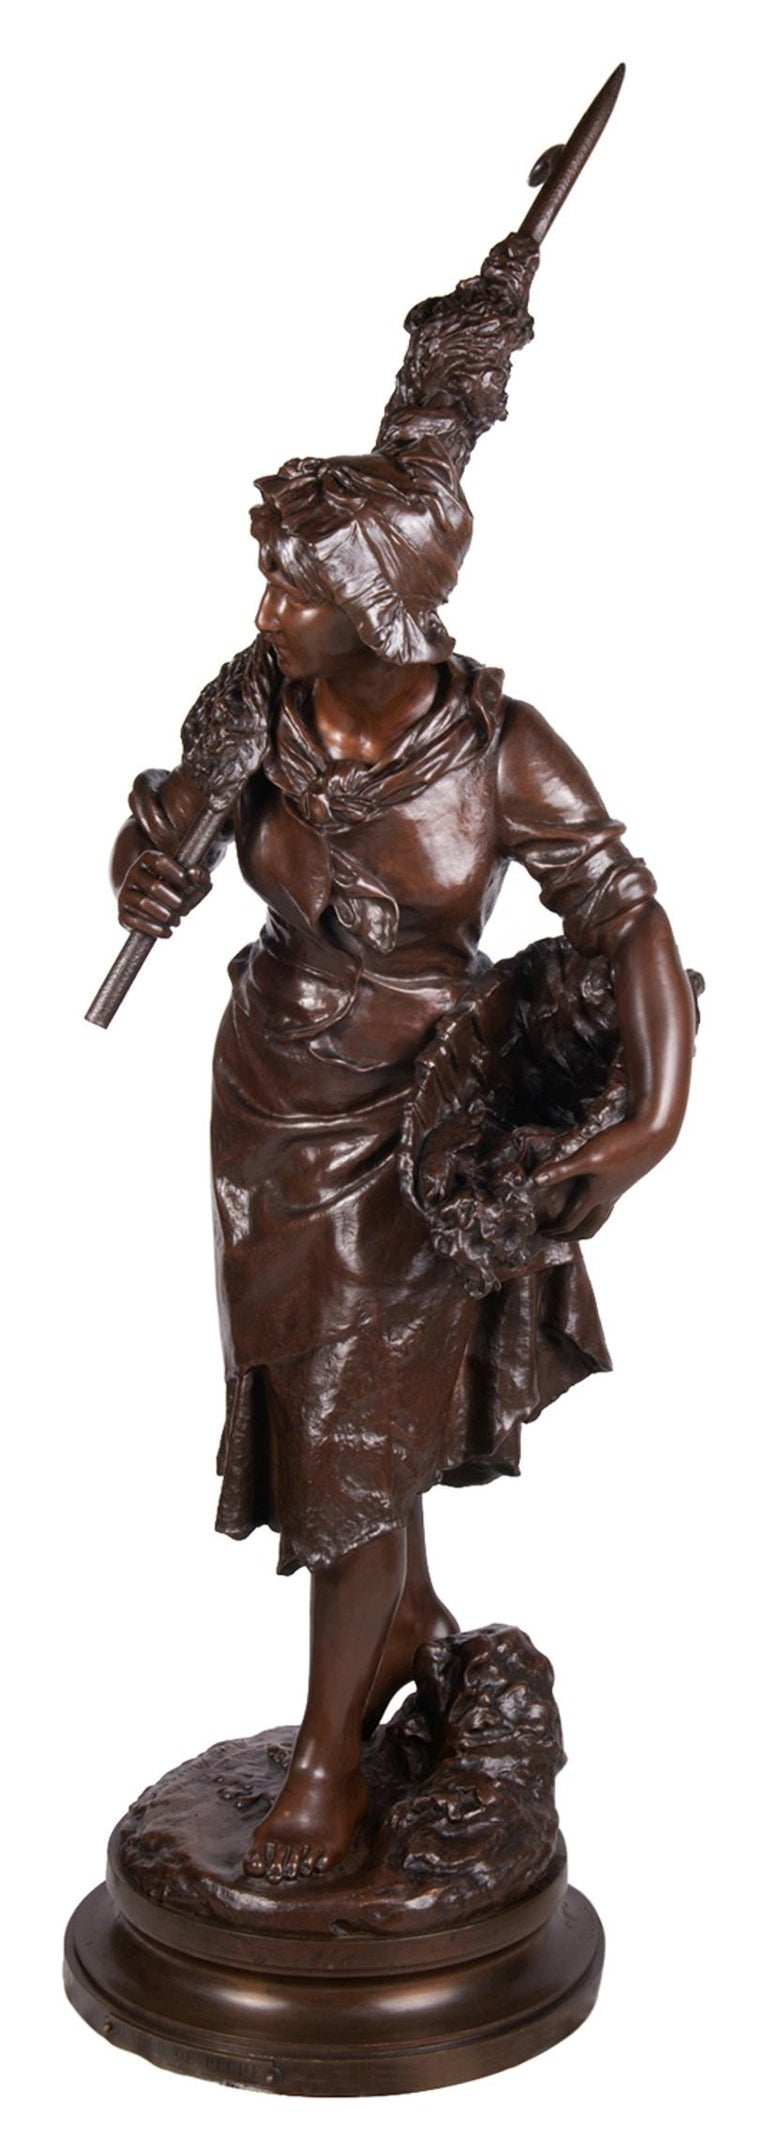 A very good quality late 19th century French bronze statue entitled 'Return from fishing' Signed: Math. Moreau  Signed Math Moreau.  Mathurin Moreau born 1822, died 1912.  The eldest son of sculptor and painter Jean-Baptiste Moreau, and